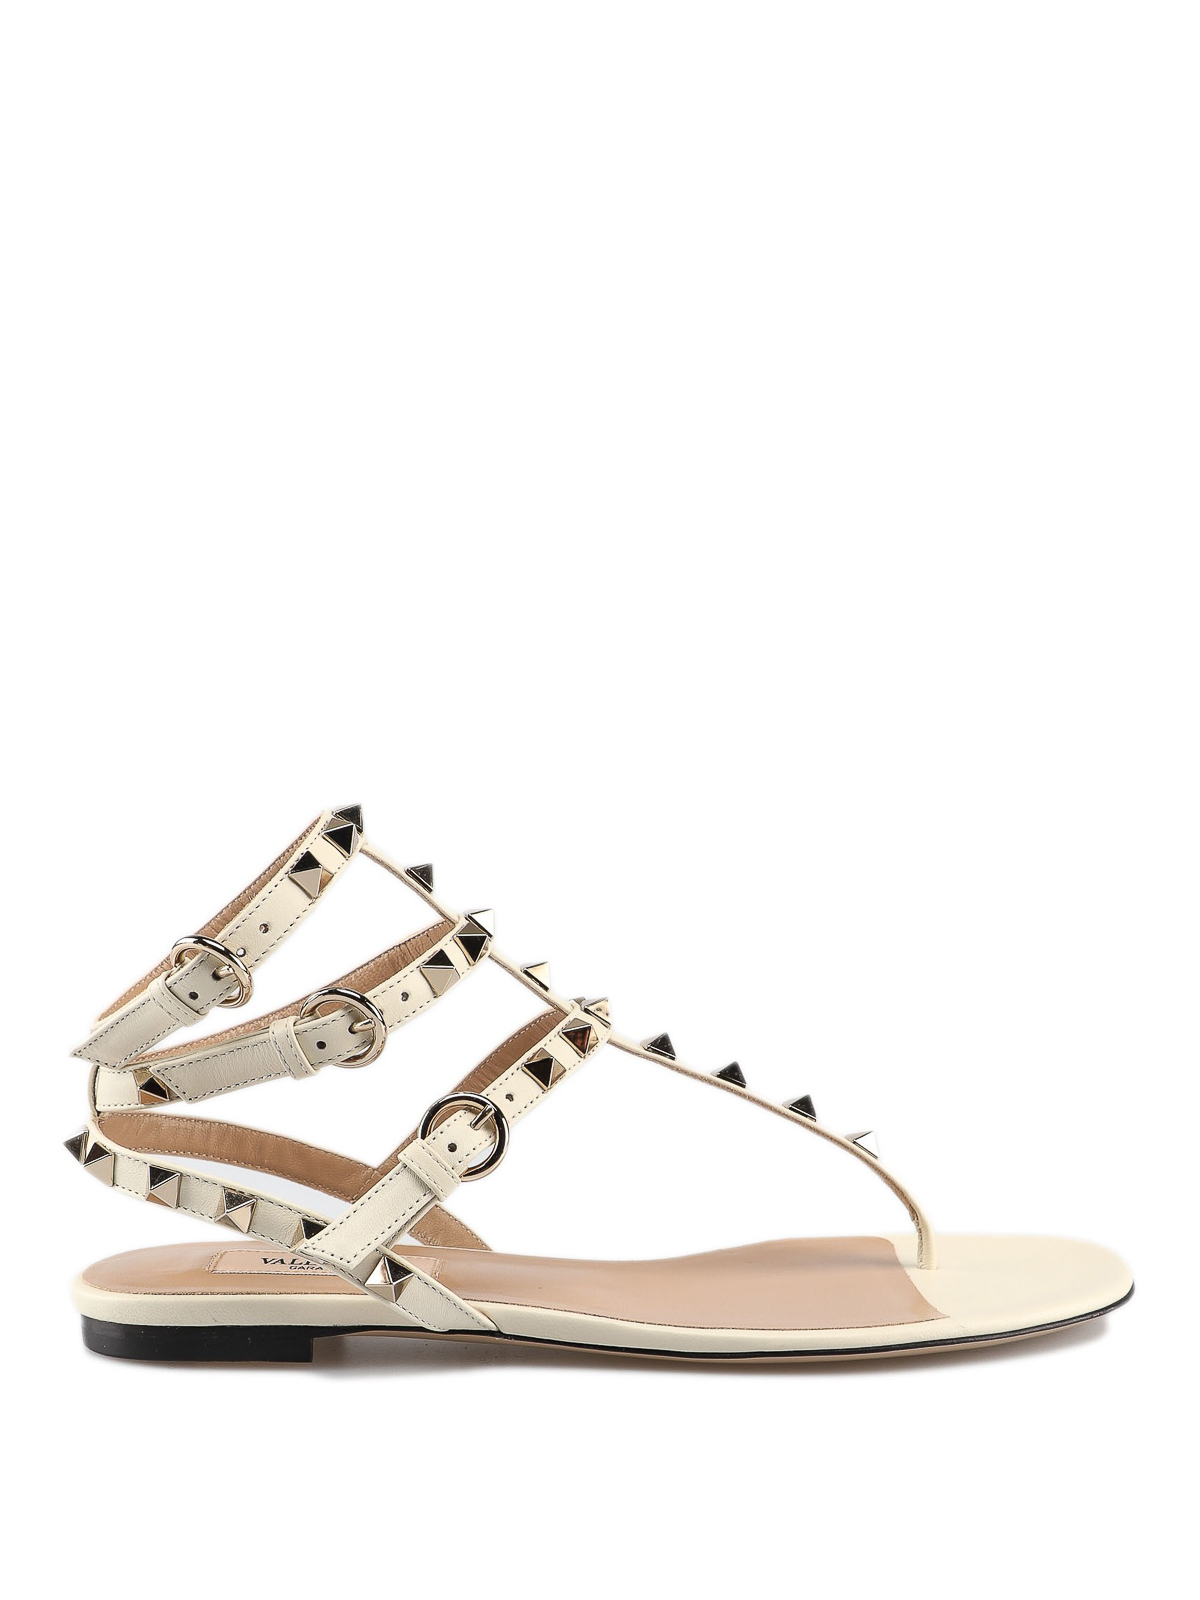 abb6bac24 Valentino Garavani - Rockstud white leather thong sandals - صندل ...